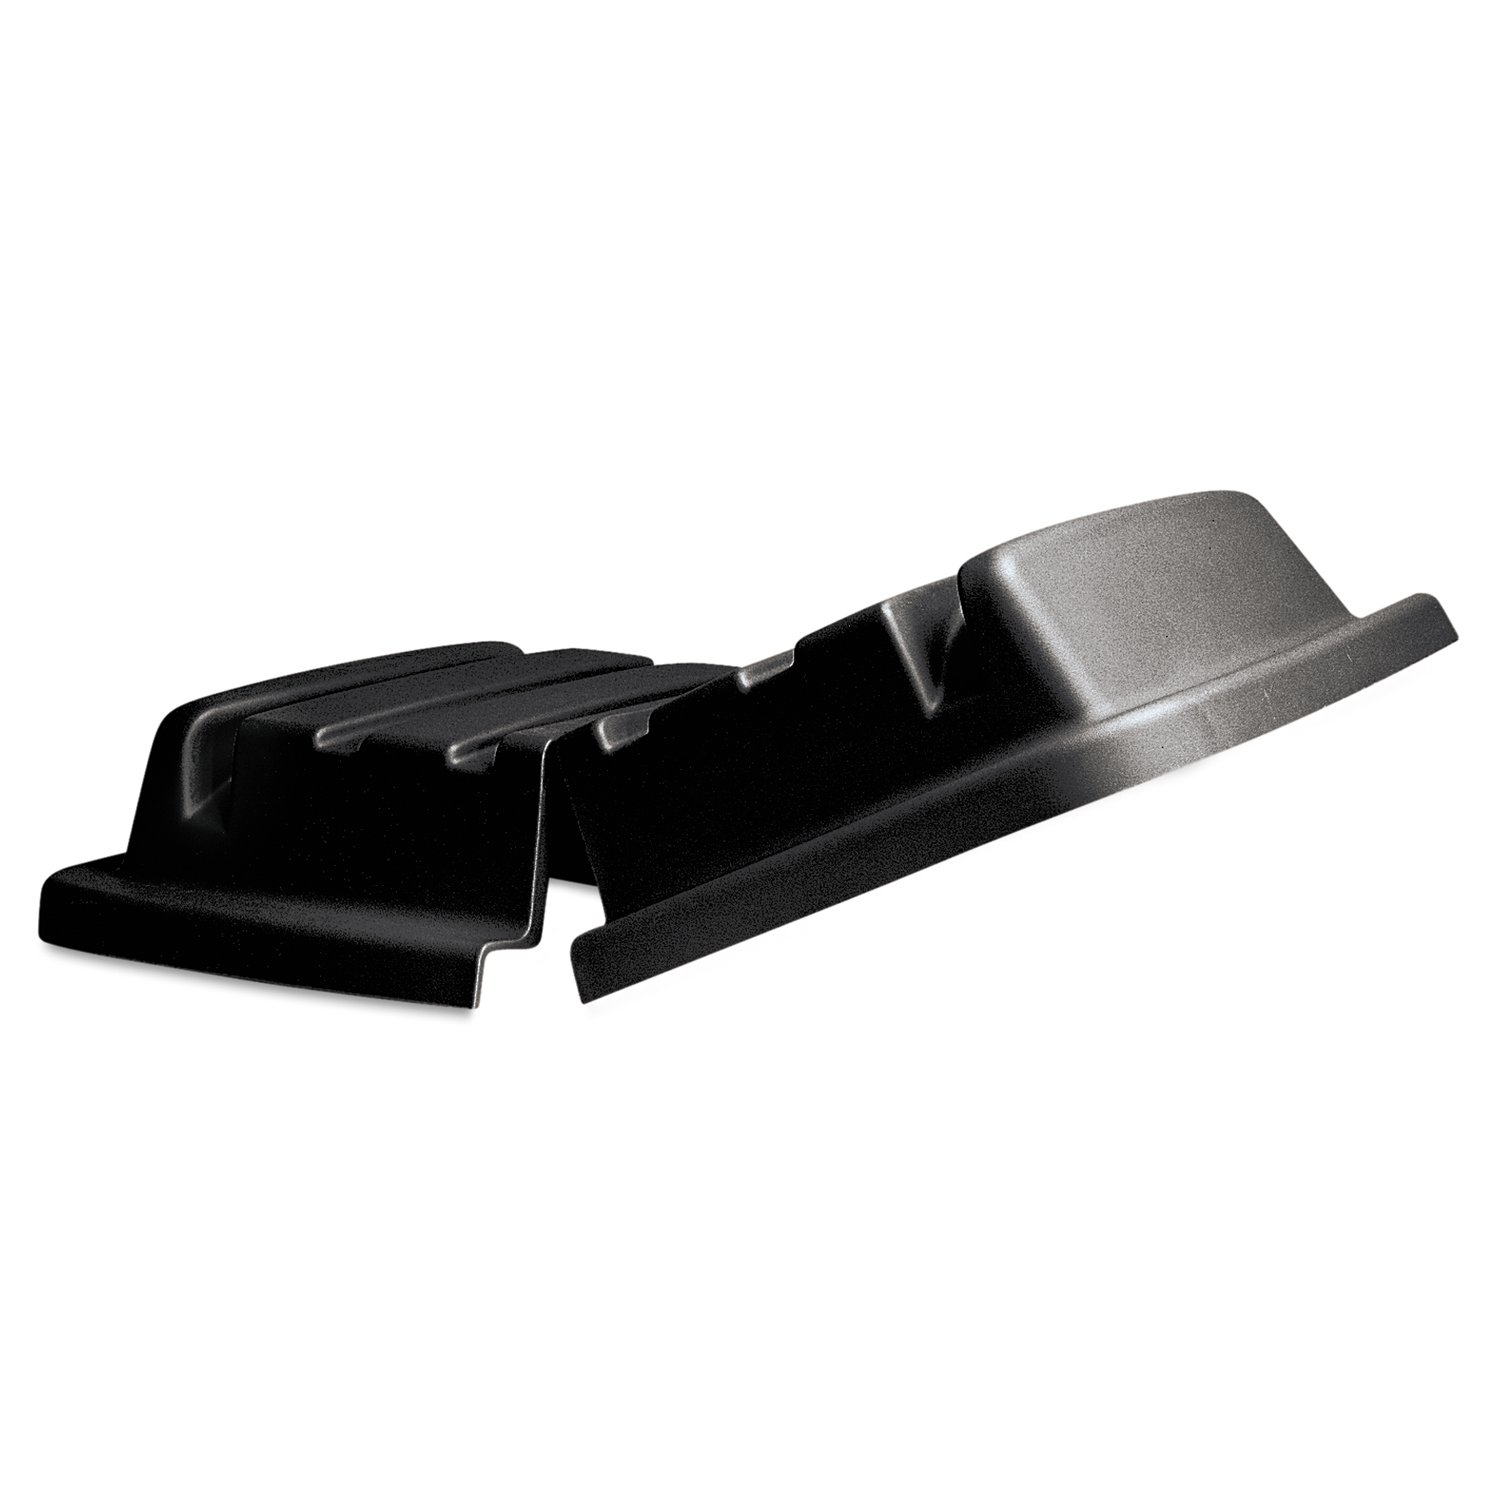 Rubbermaid Lid for 4614 and 4616 Cube Trucks and 4716 Heavy Duty Utility Truck - Black Newell Rubbermaid FG461500BLA